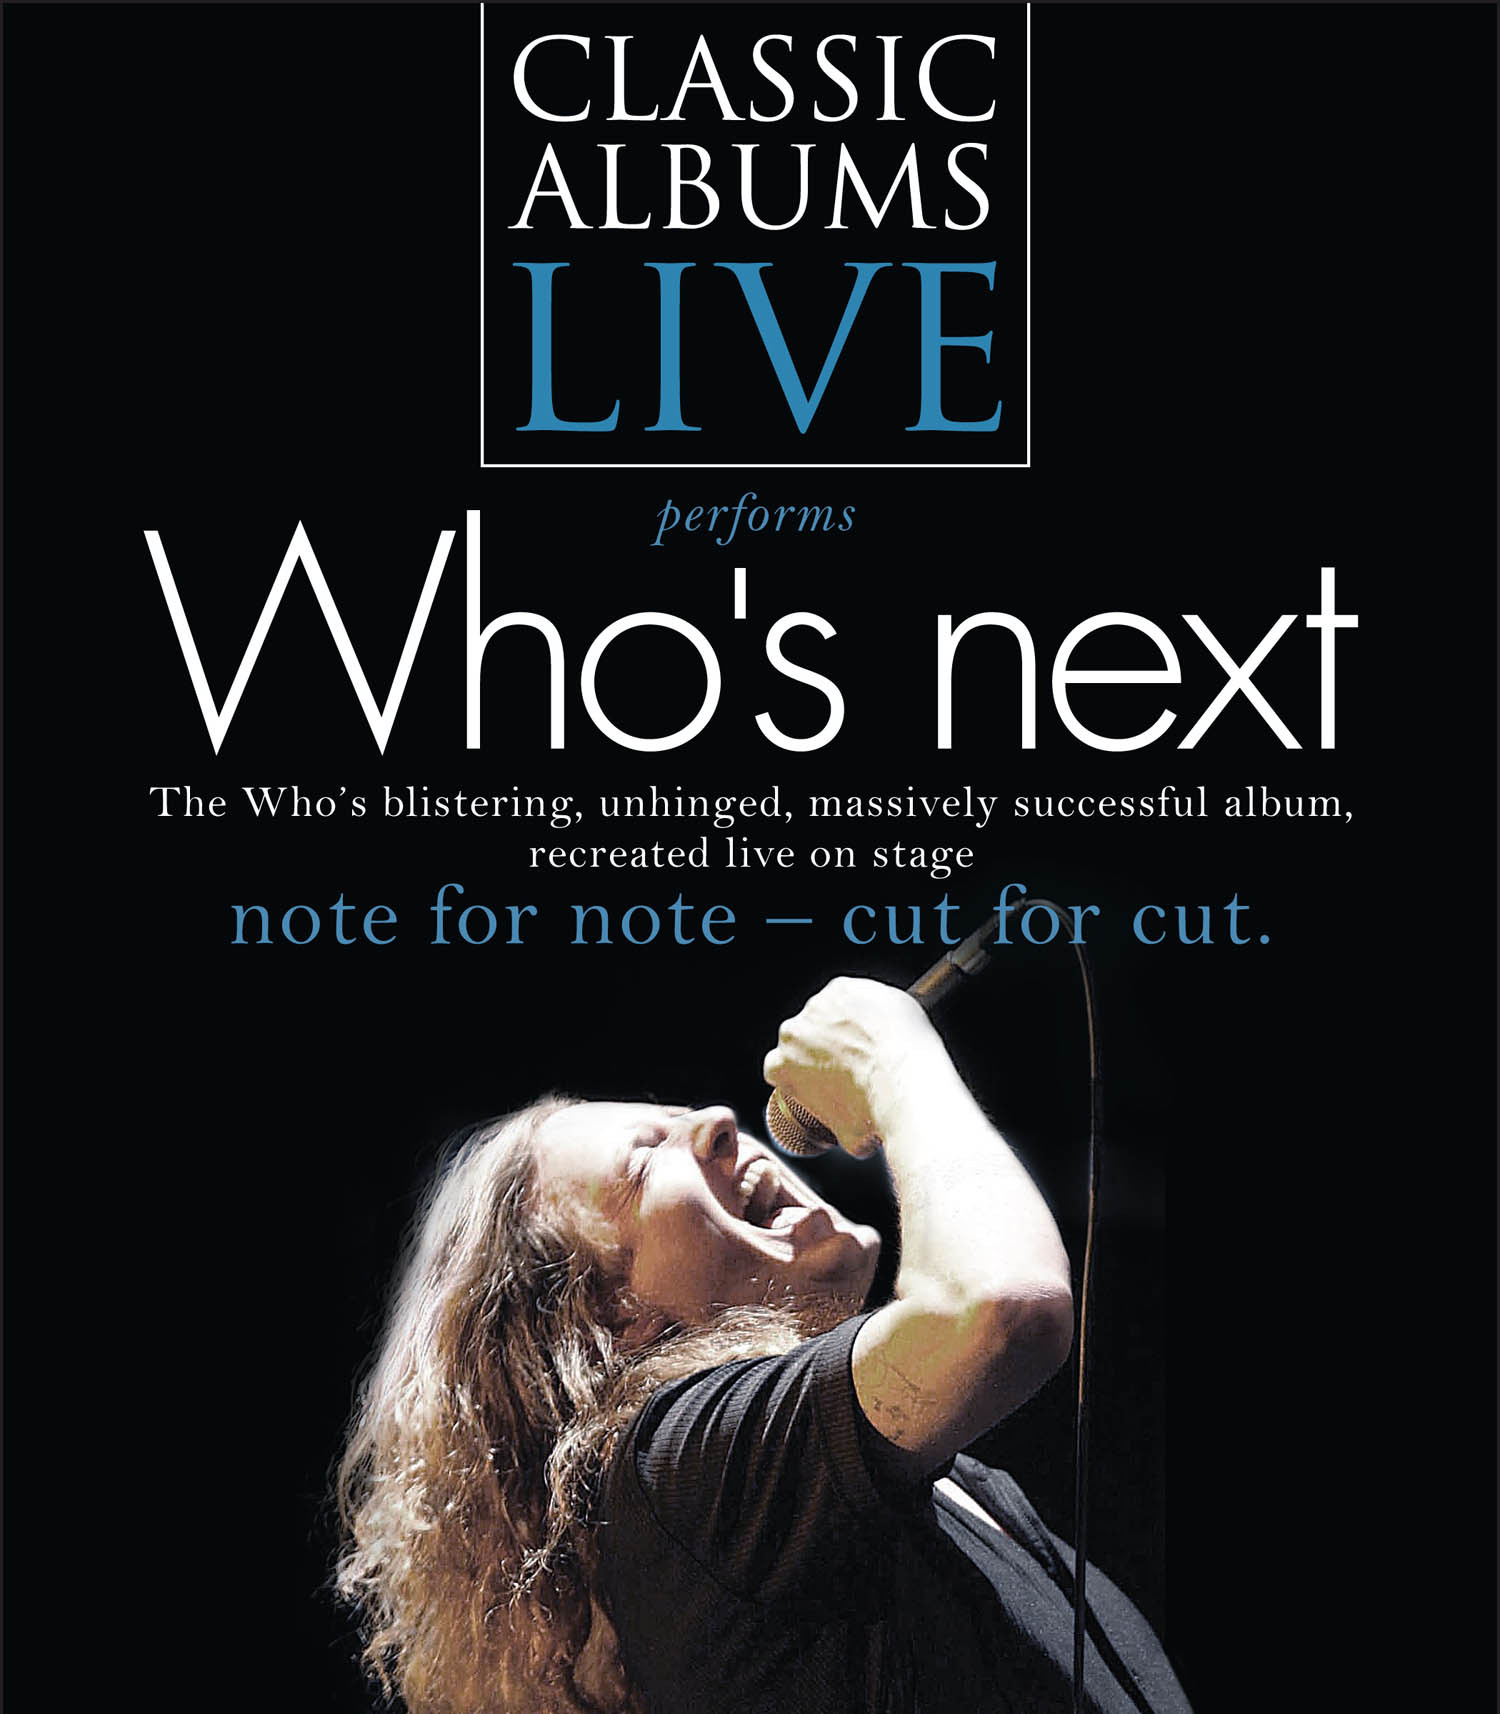 Image result for classic albums live THE WHO - who's next